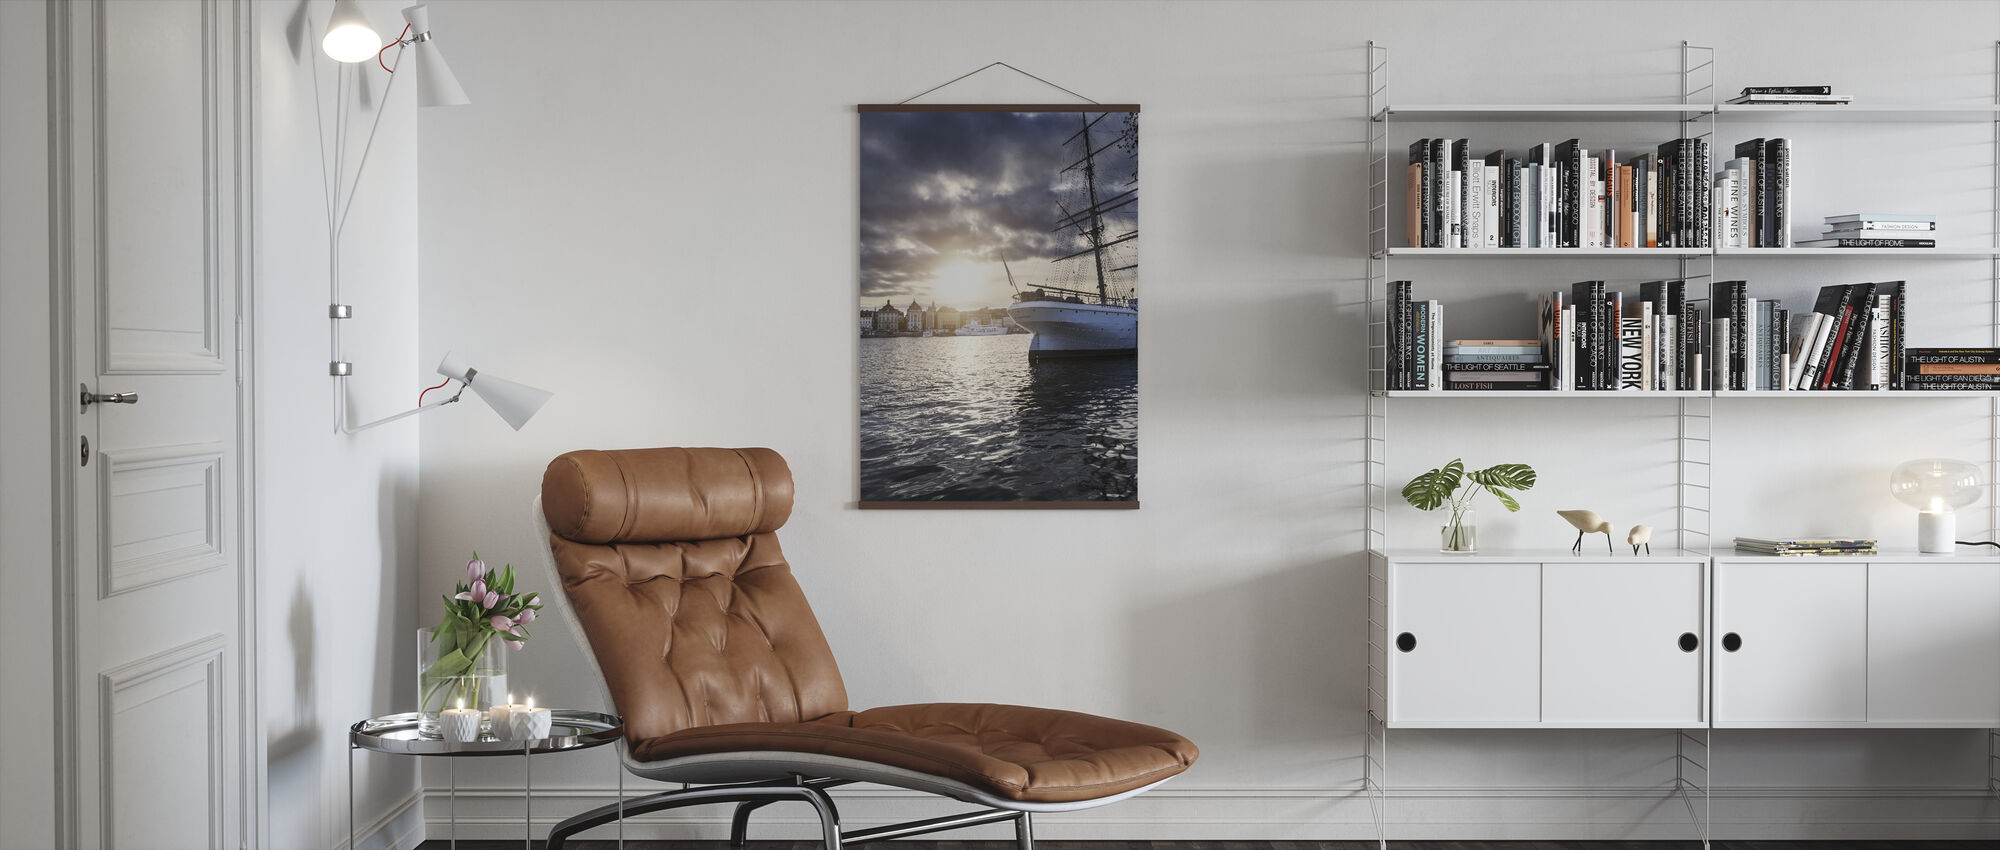 Sunset Sailboat - Poster - Living Room